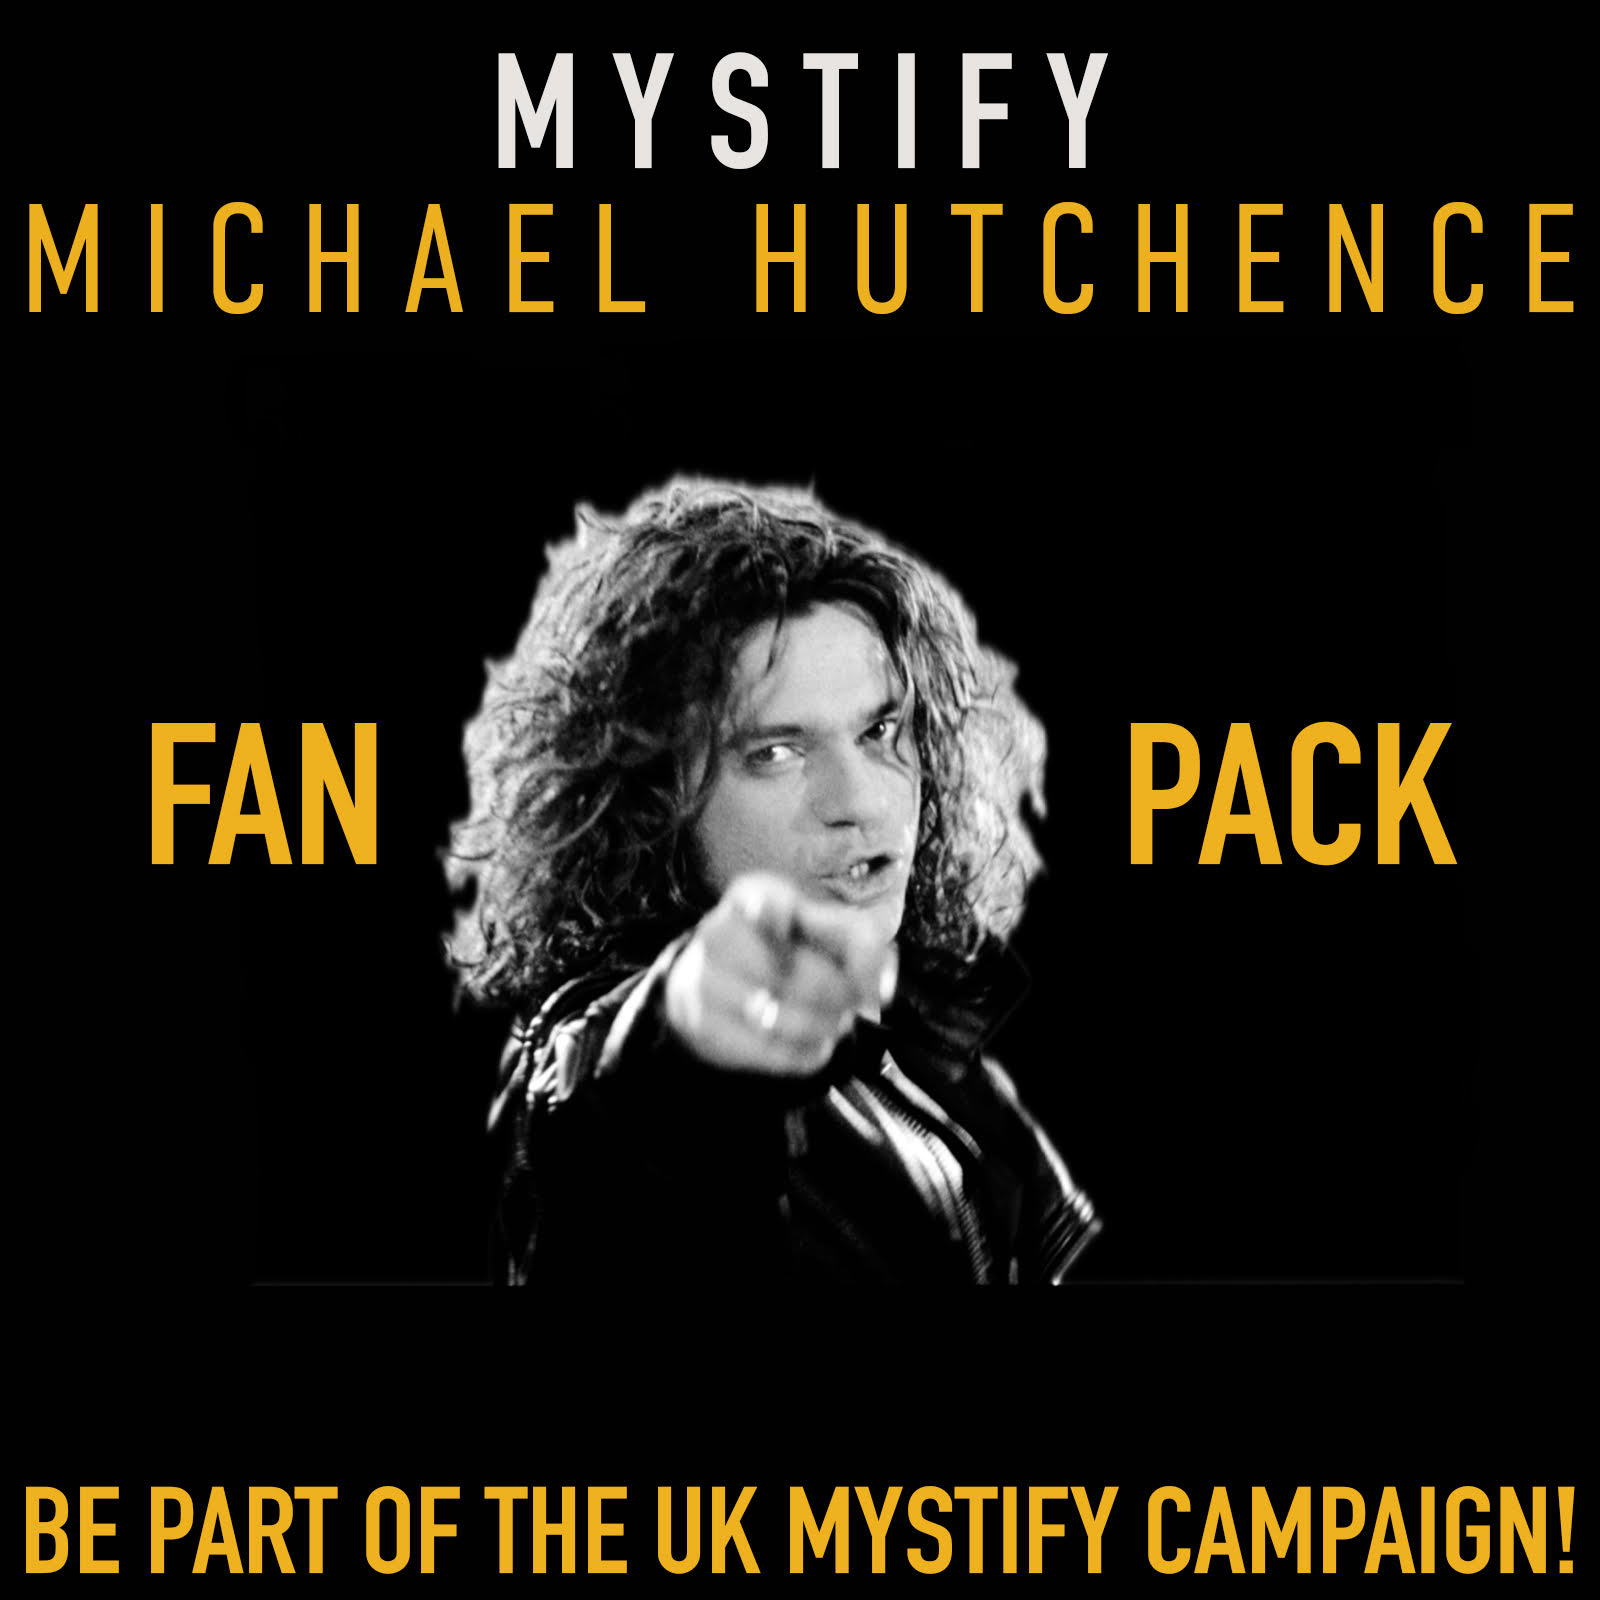 Image 1 of the Mystify: Michael Hutchence gallery